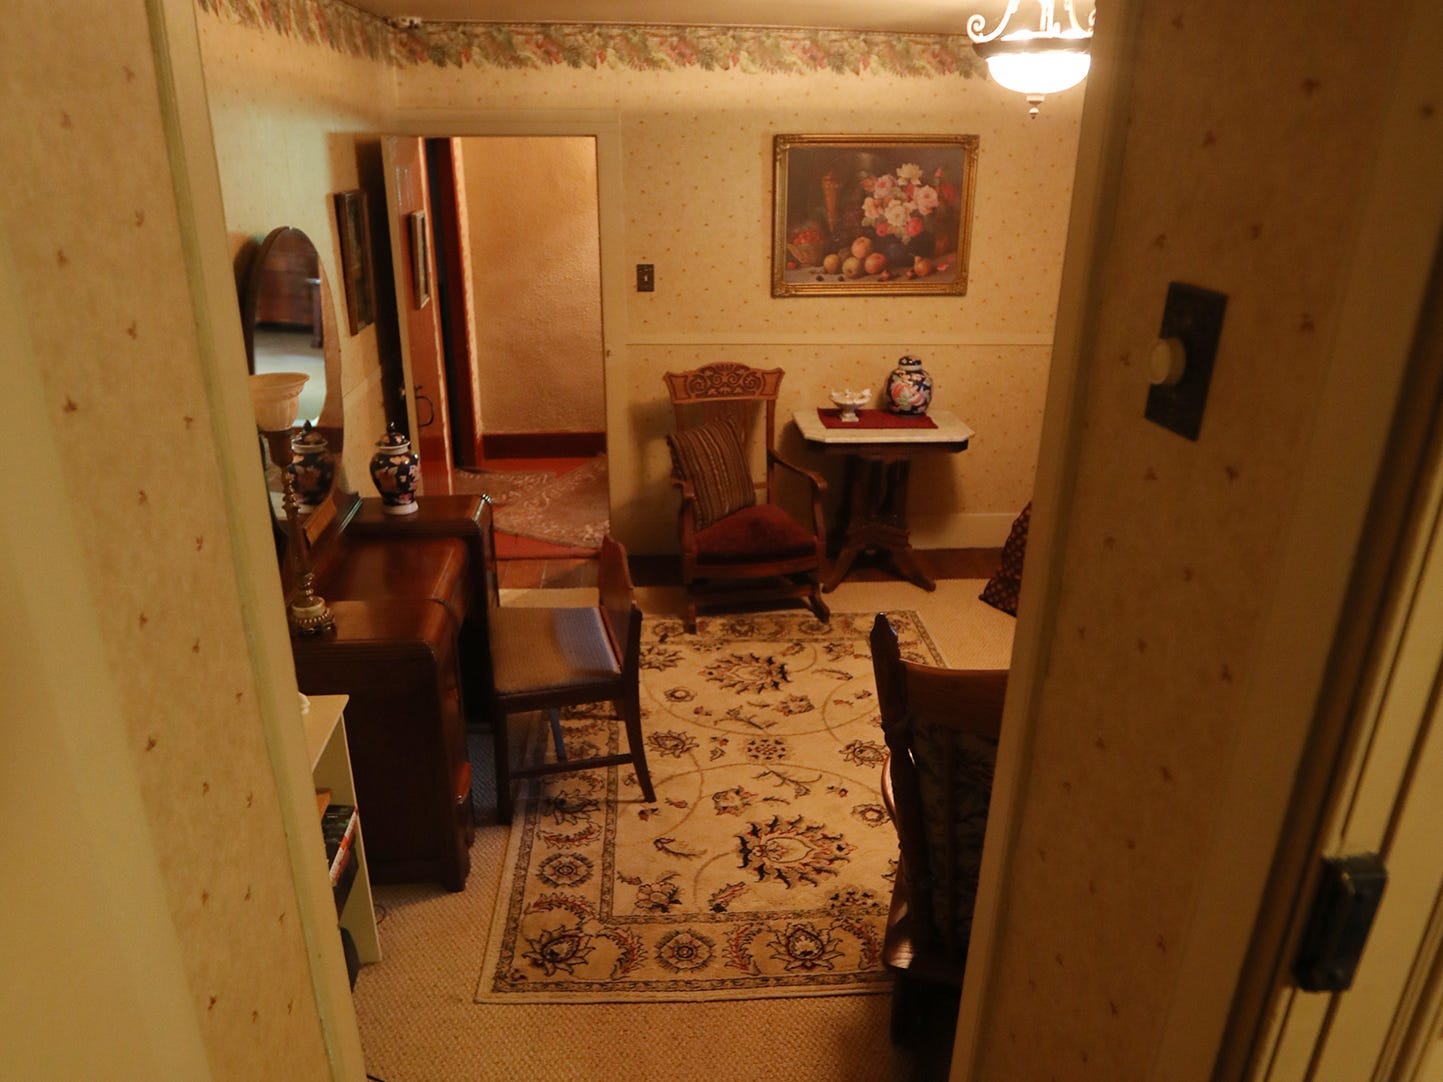 Upstairs has four bedrooms, this room is situated between two staircases.